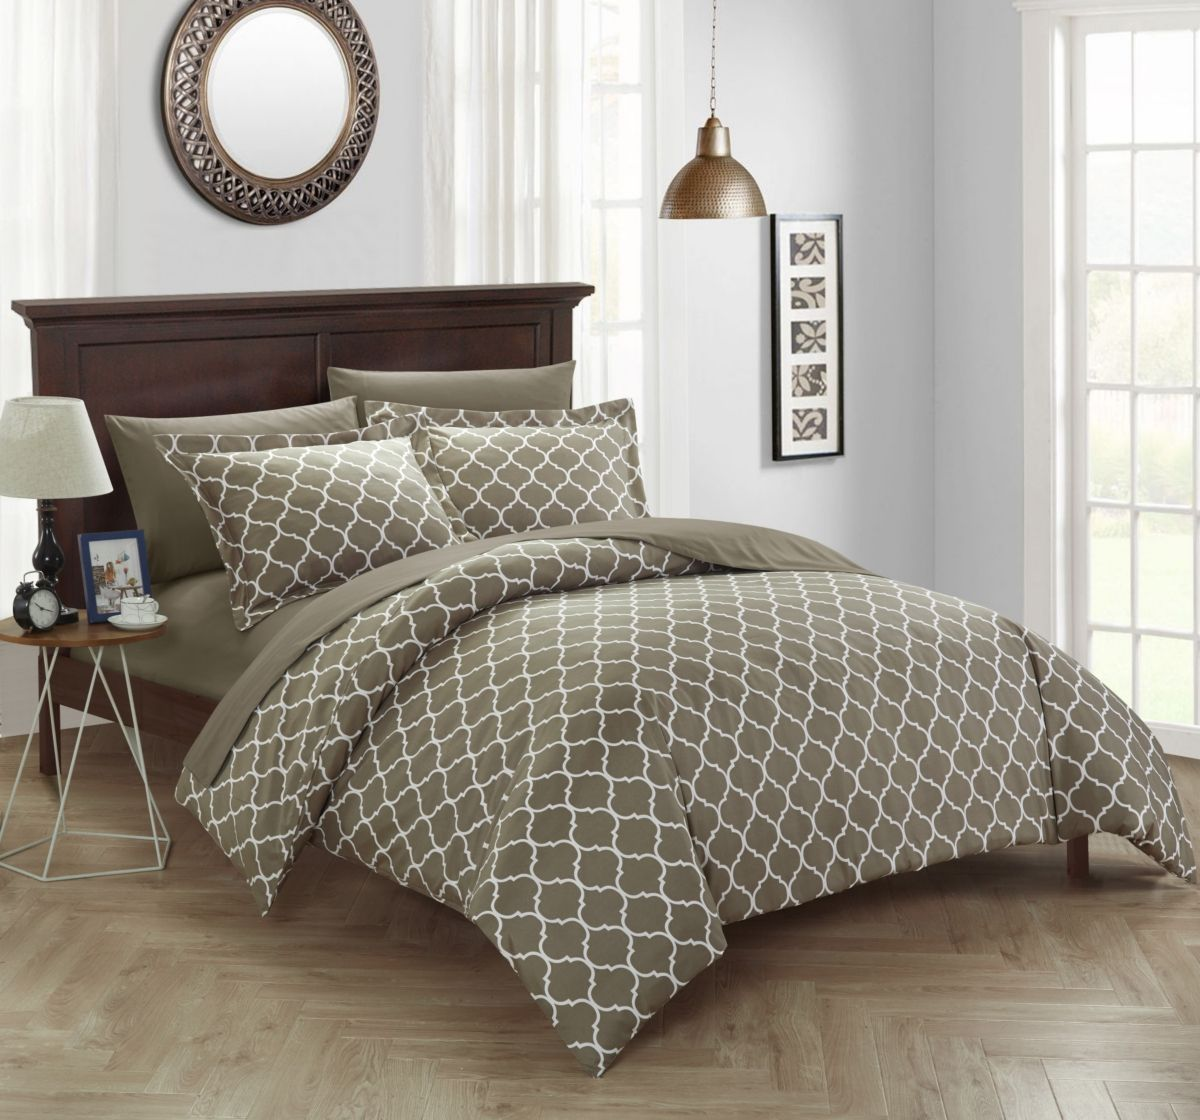 Chic Home Brooklyn Duvet Cover Sets Reviews Duvet Covers Bed